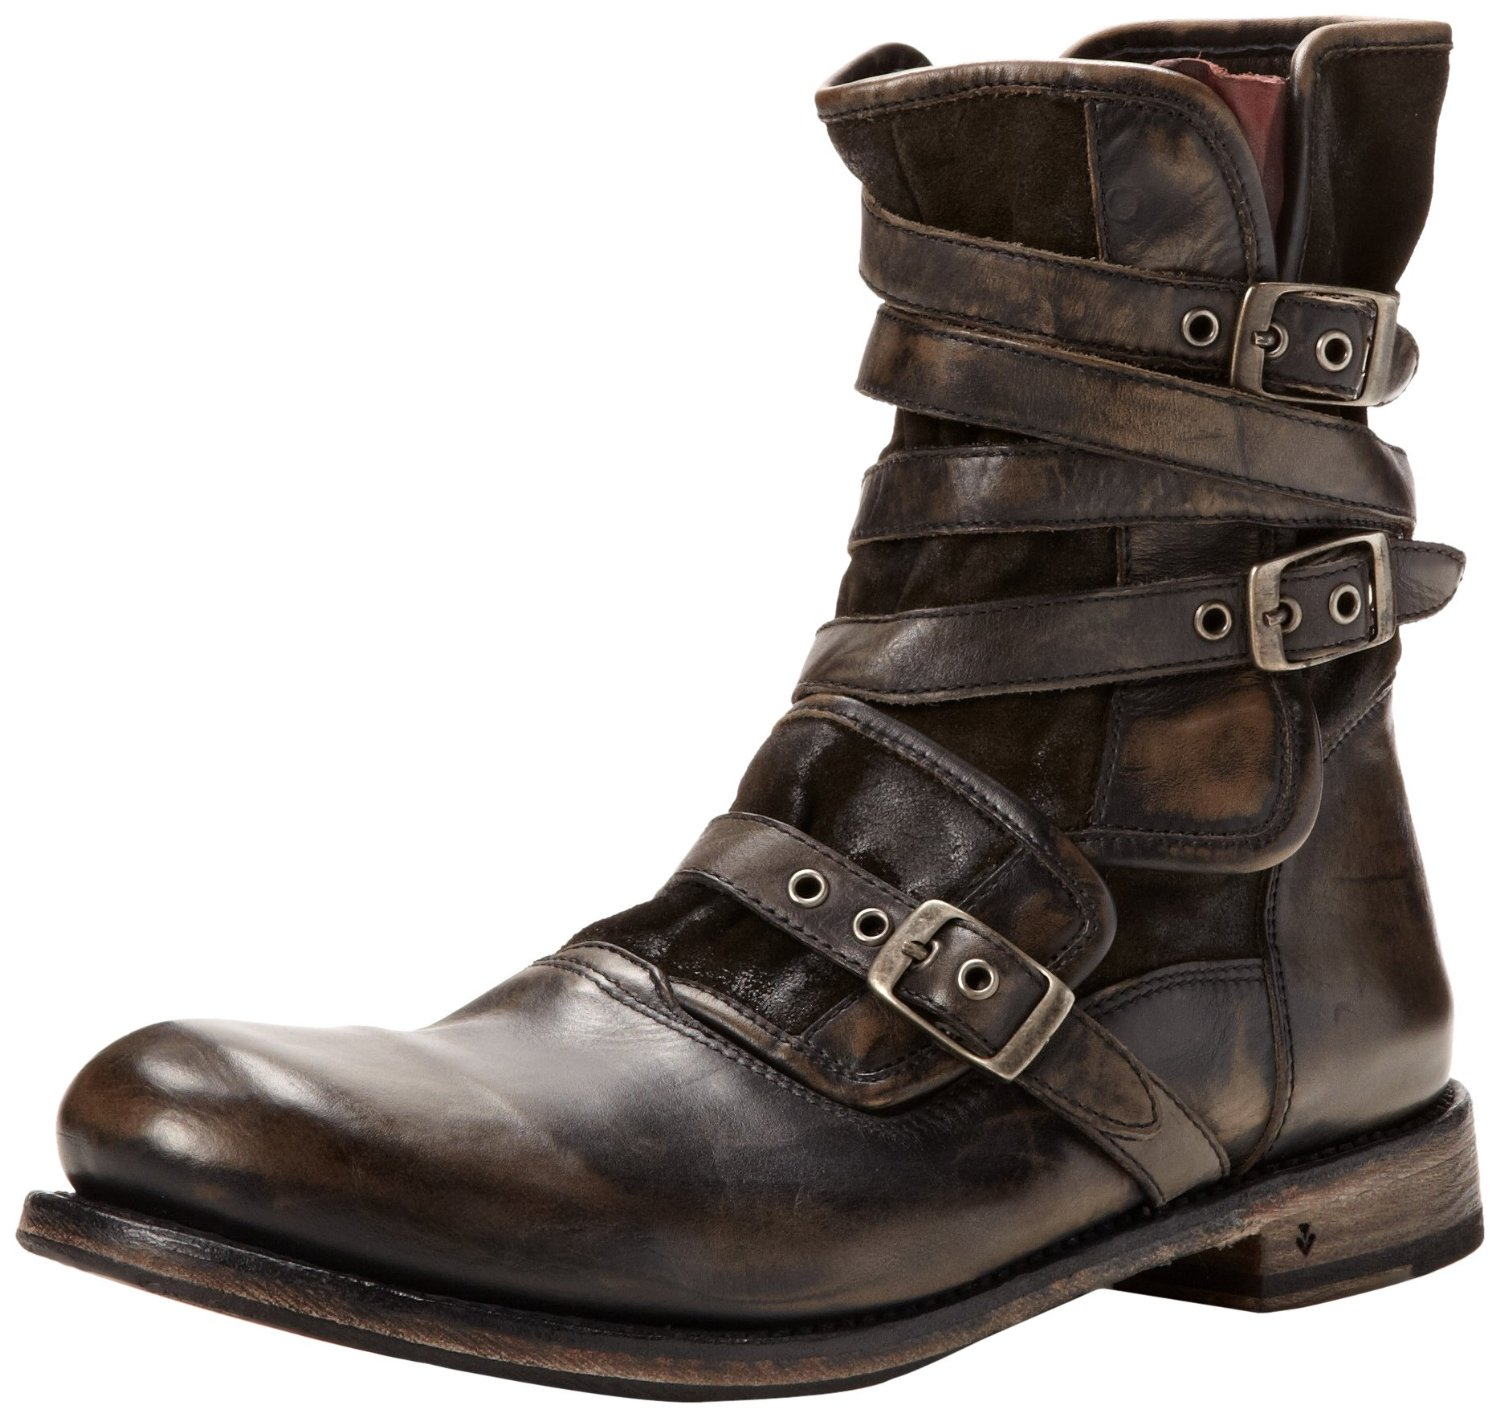 Mens Buckle Boots tN2Lud5o